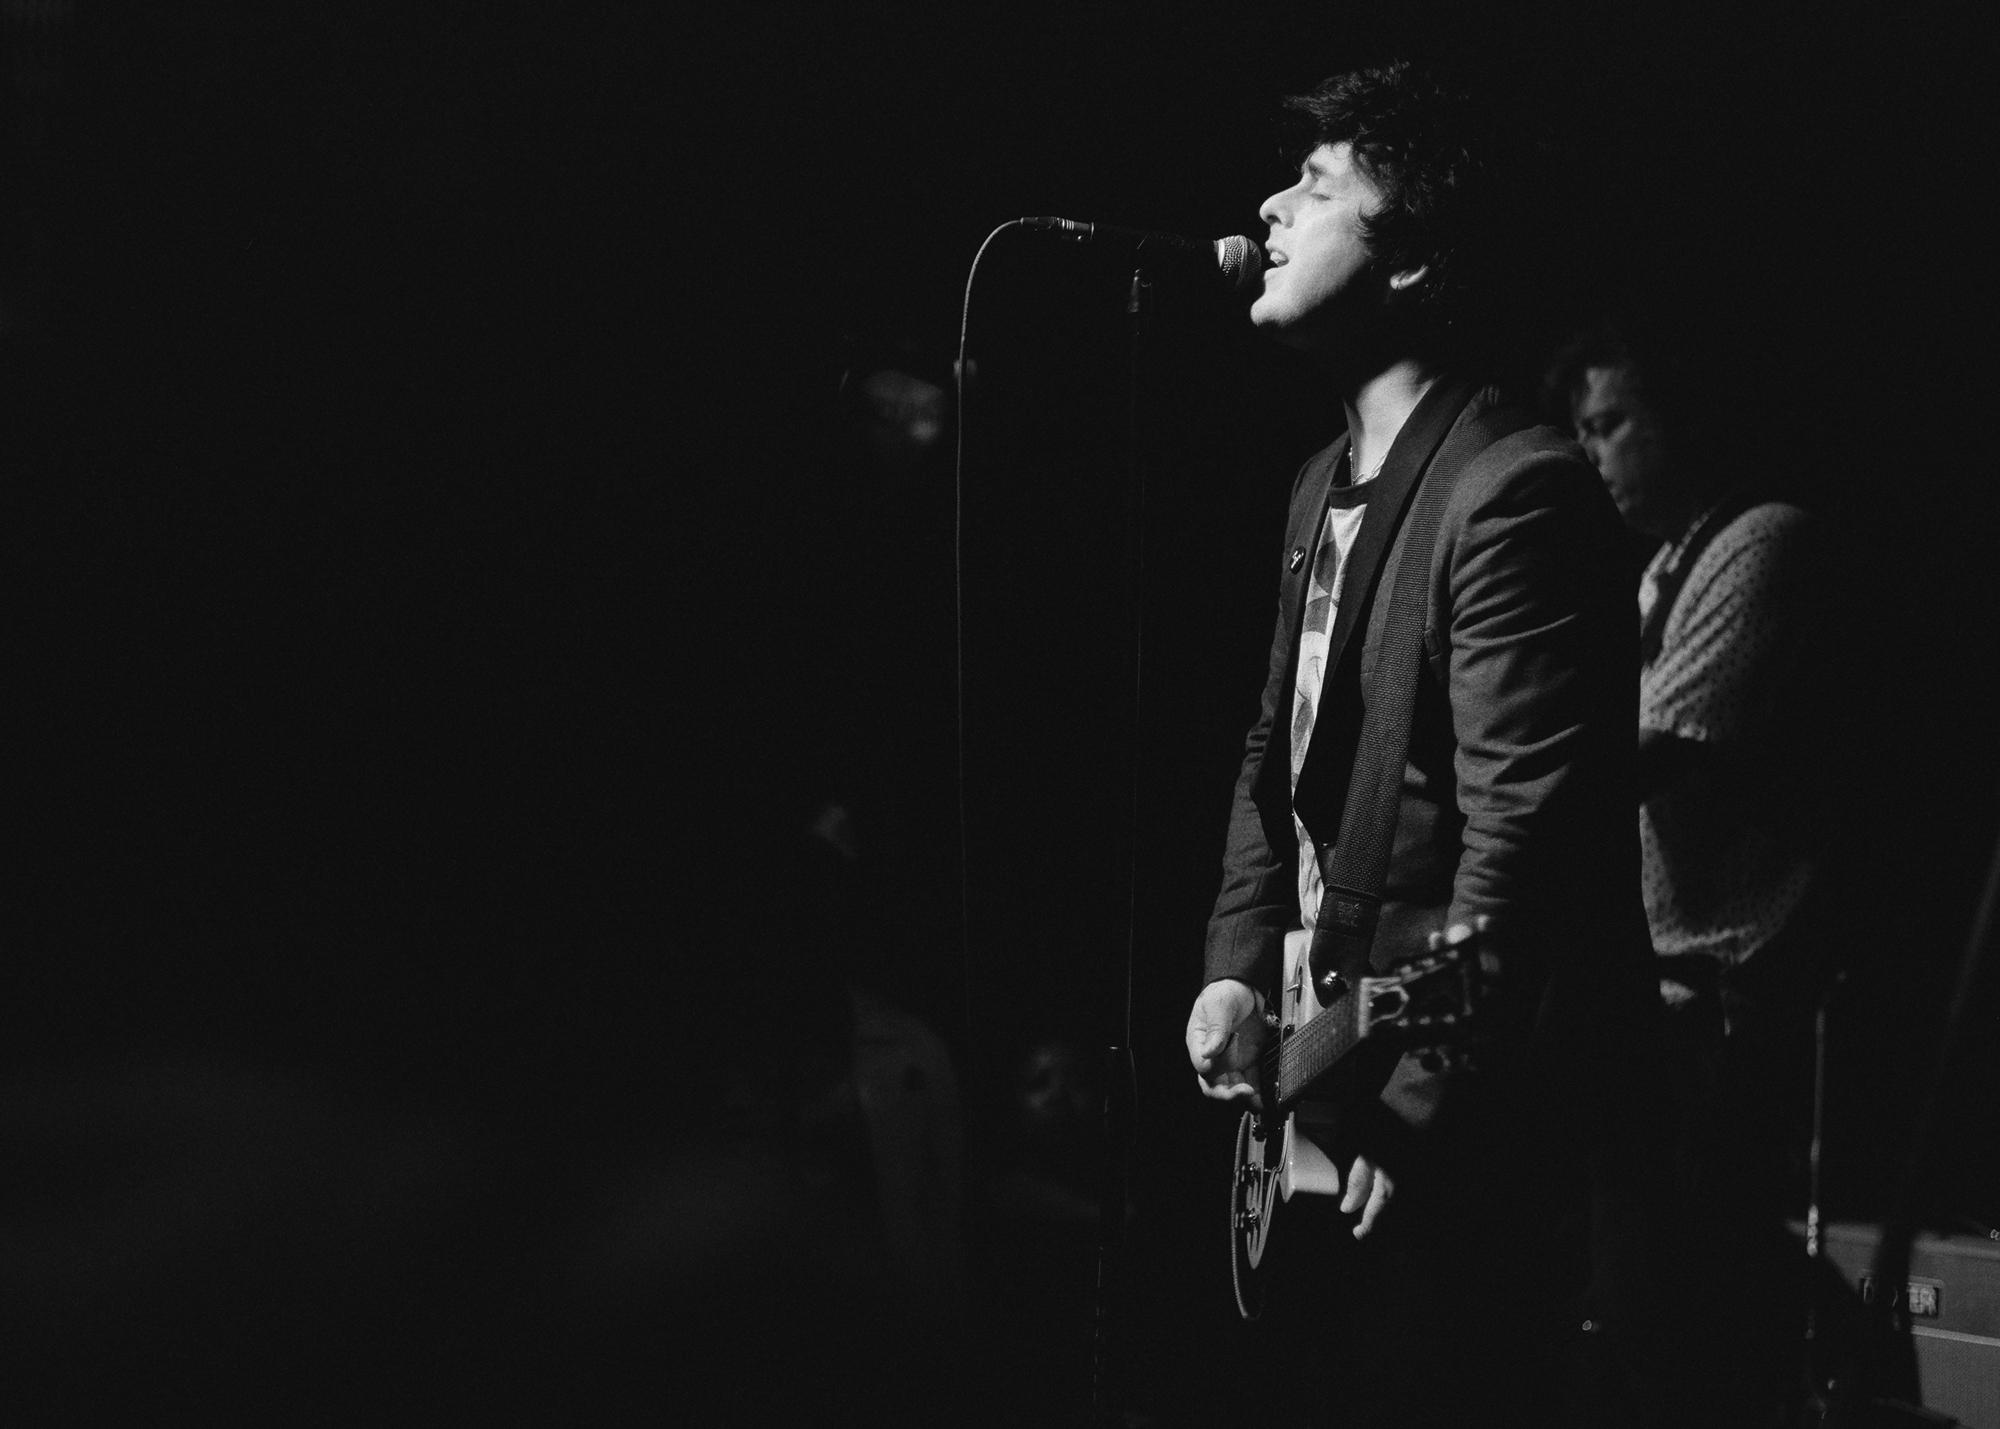 """Billie Joe Armstrong performing with his side project band """"The Coverups"""" onstage in Oakland at the small mighty rock venue of The Golden Bull bar. The Coverups played here on September 19, 2019, half a year before the Covid 19 pandemic proved so difficult to the income of the bar, that it temporarily shuttered it's doors. Now it's opened again, outside only, and planning to build a parklet in the city of Oakland."""